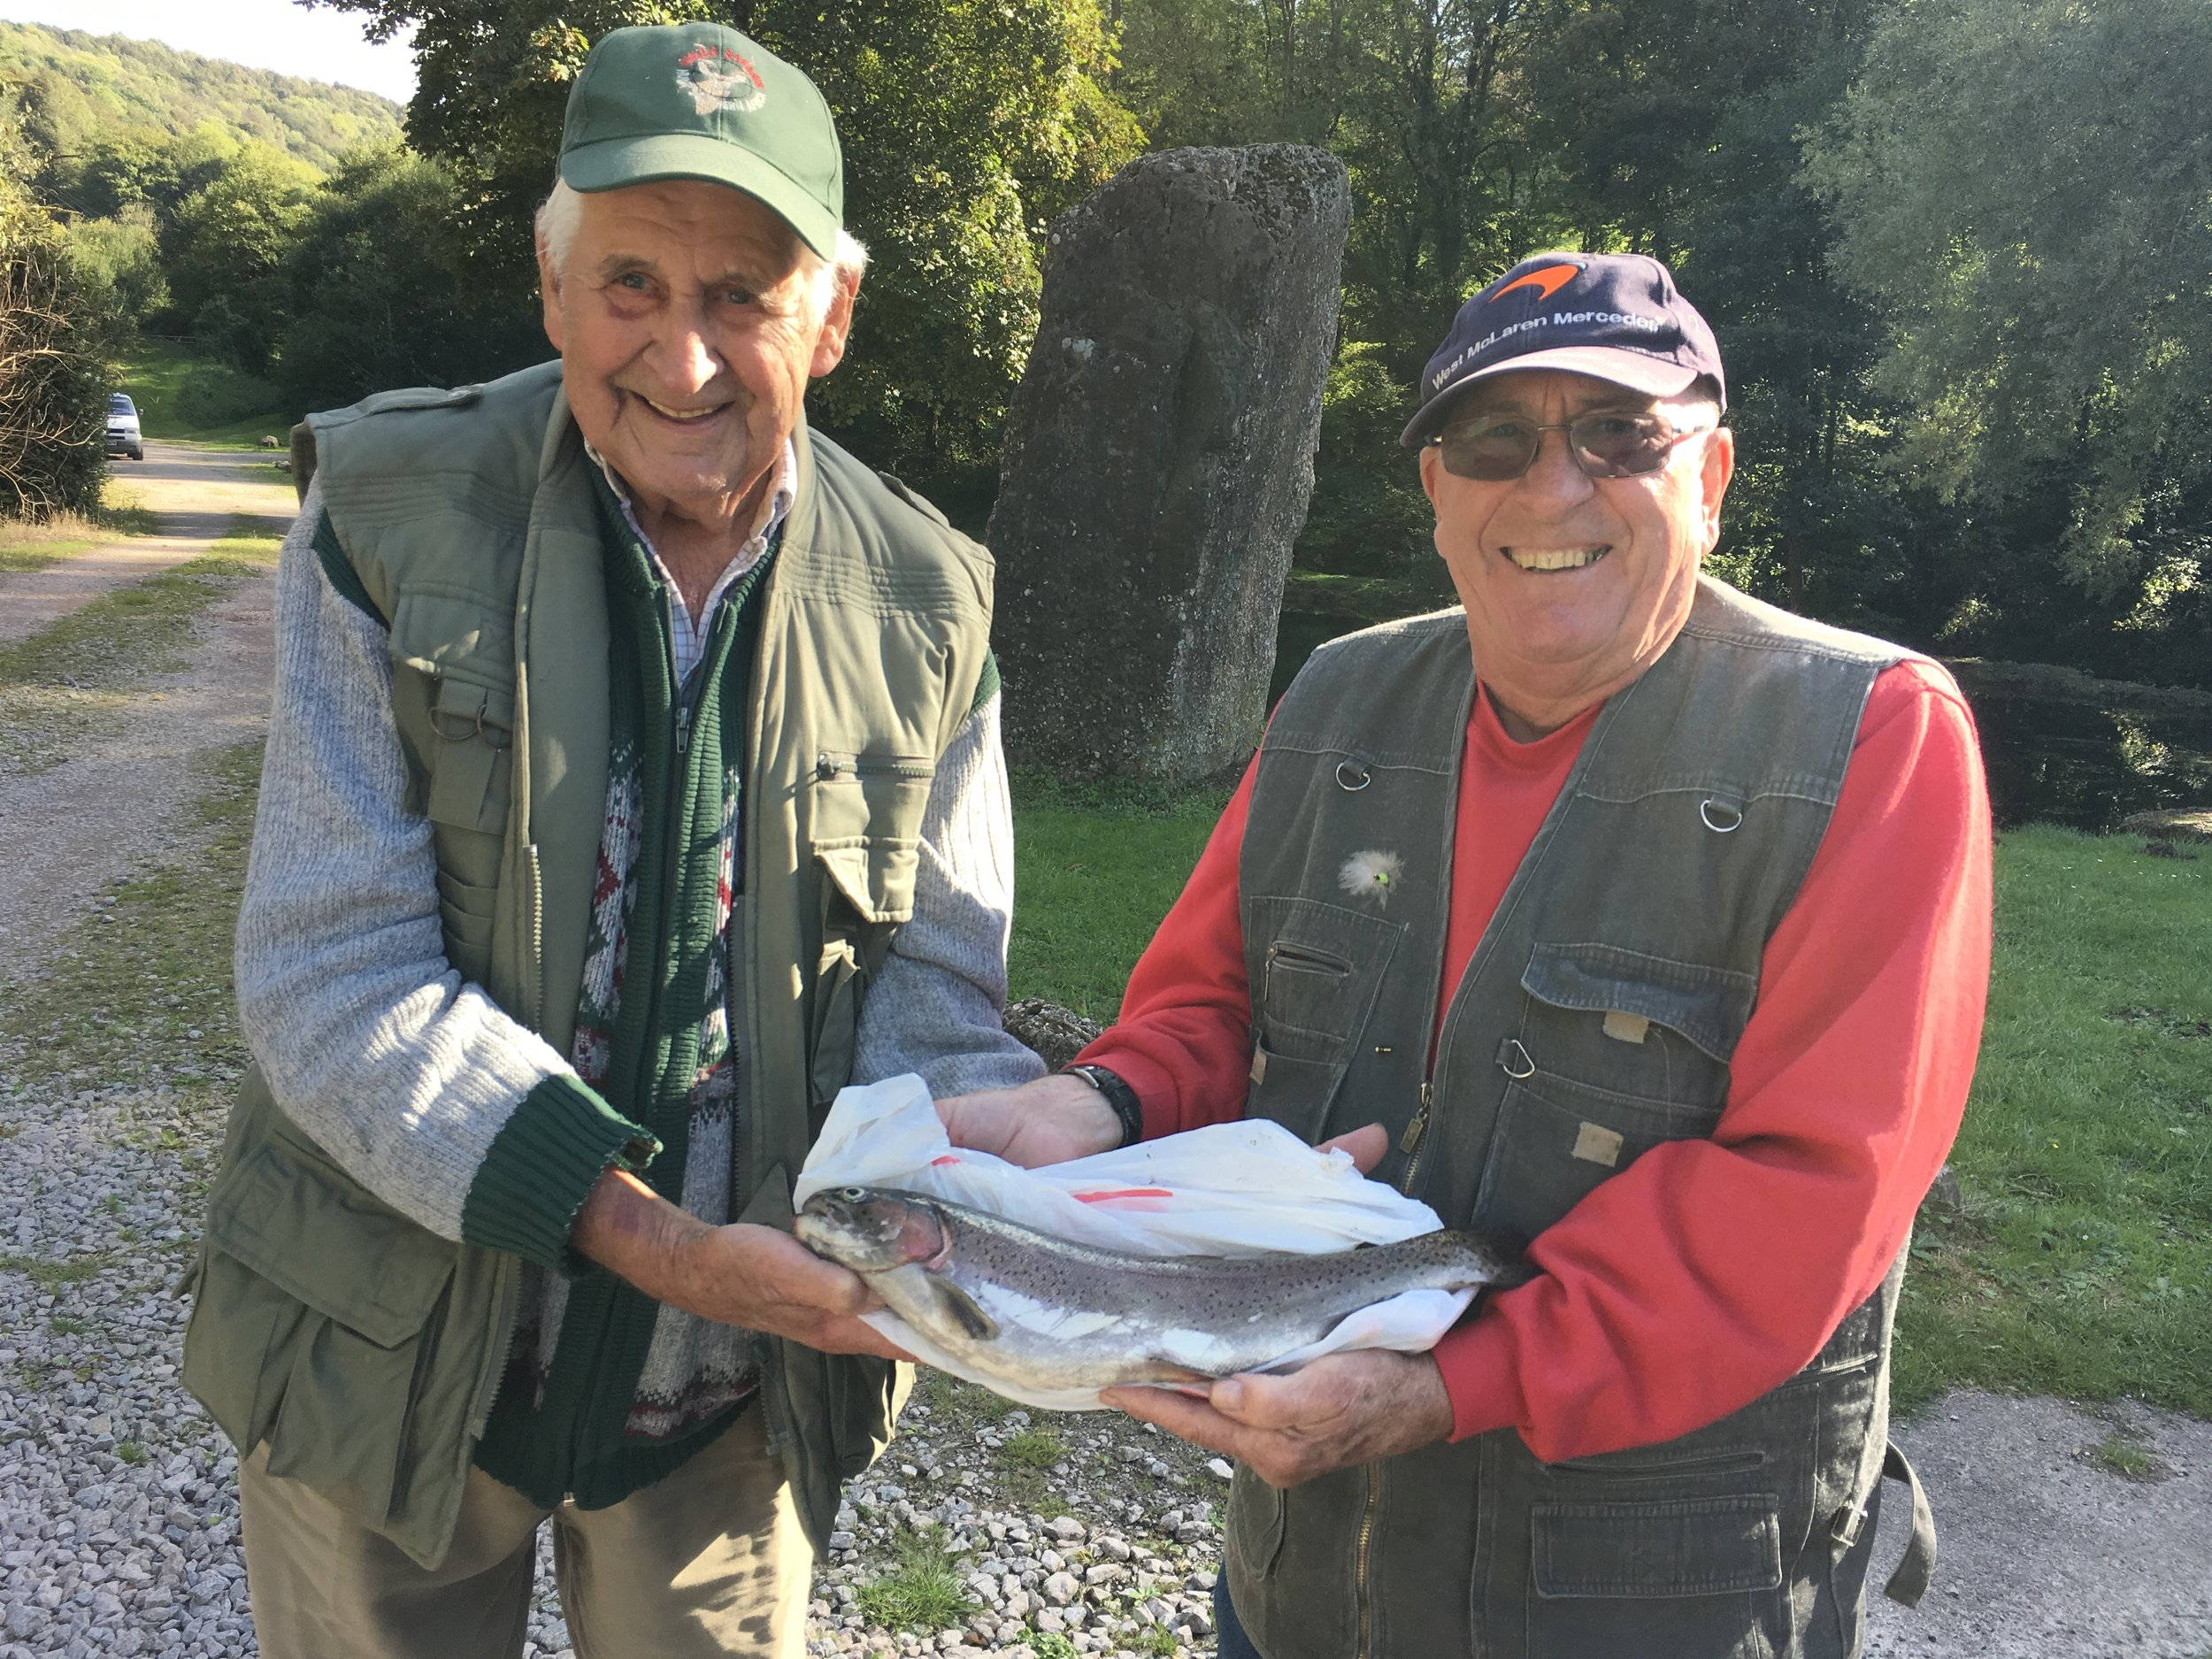 86 year old Gordon Russel and friend Robert Byng from Bromsgrove enjoyed their day at Bigwell fishery.